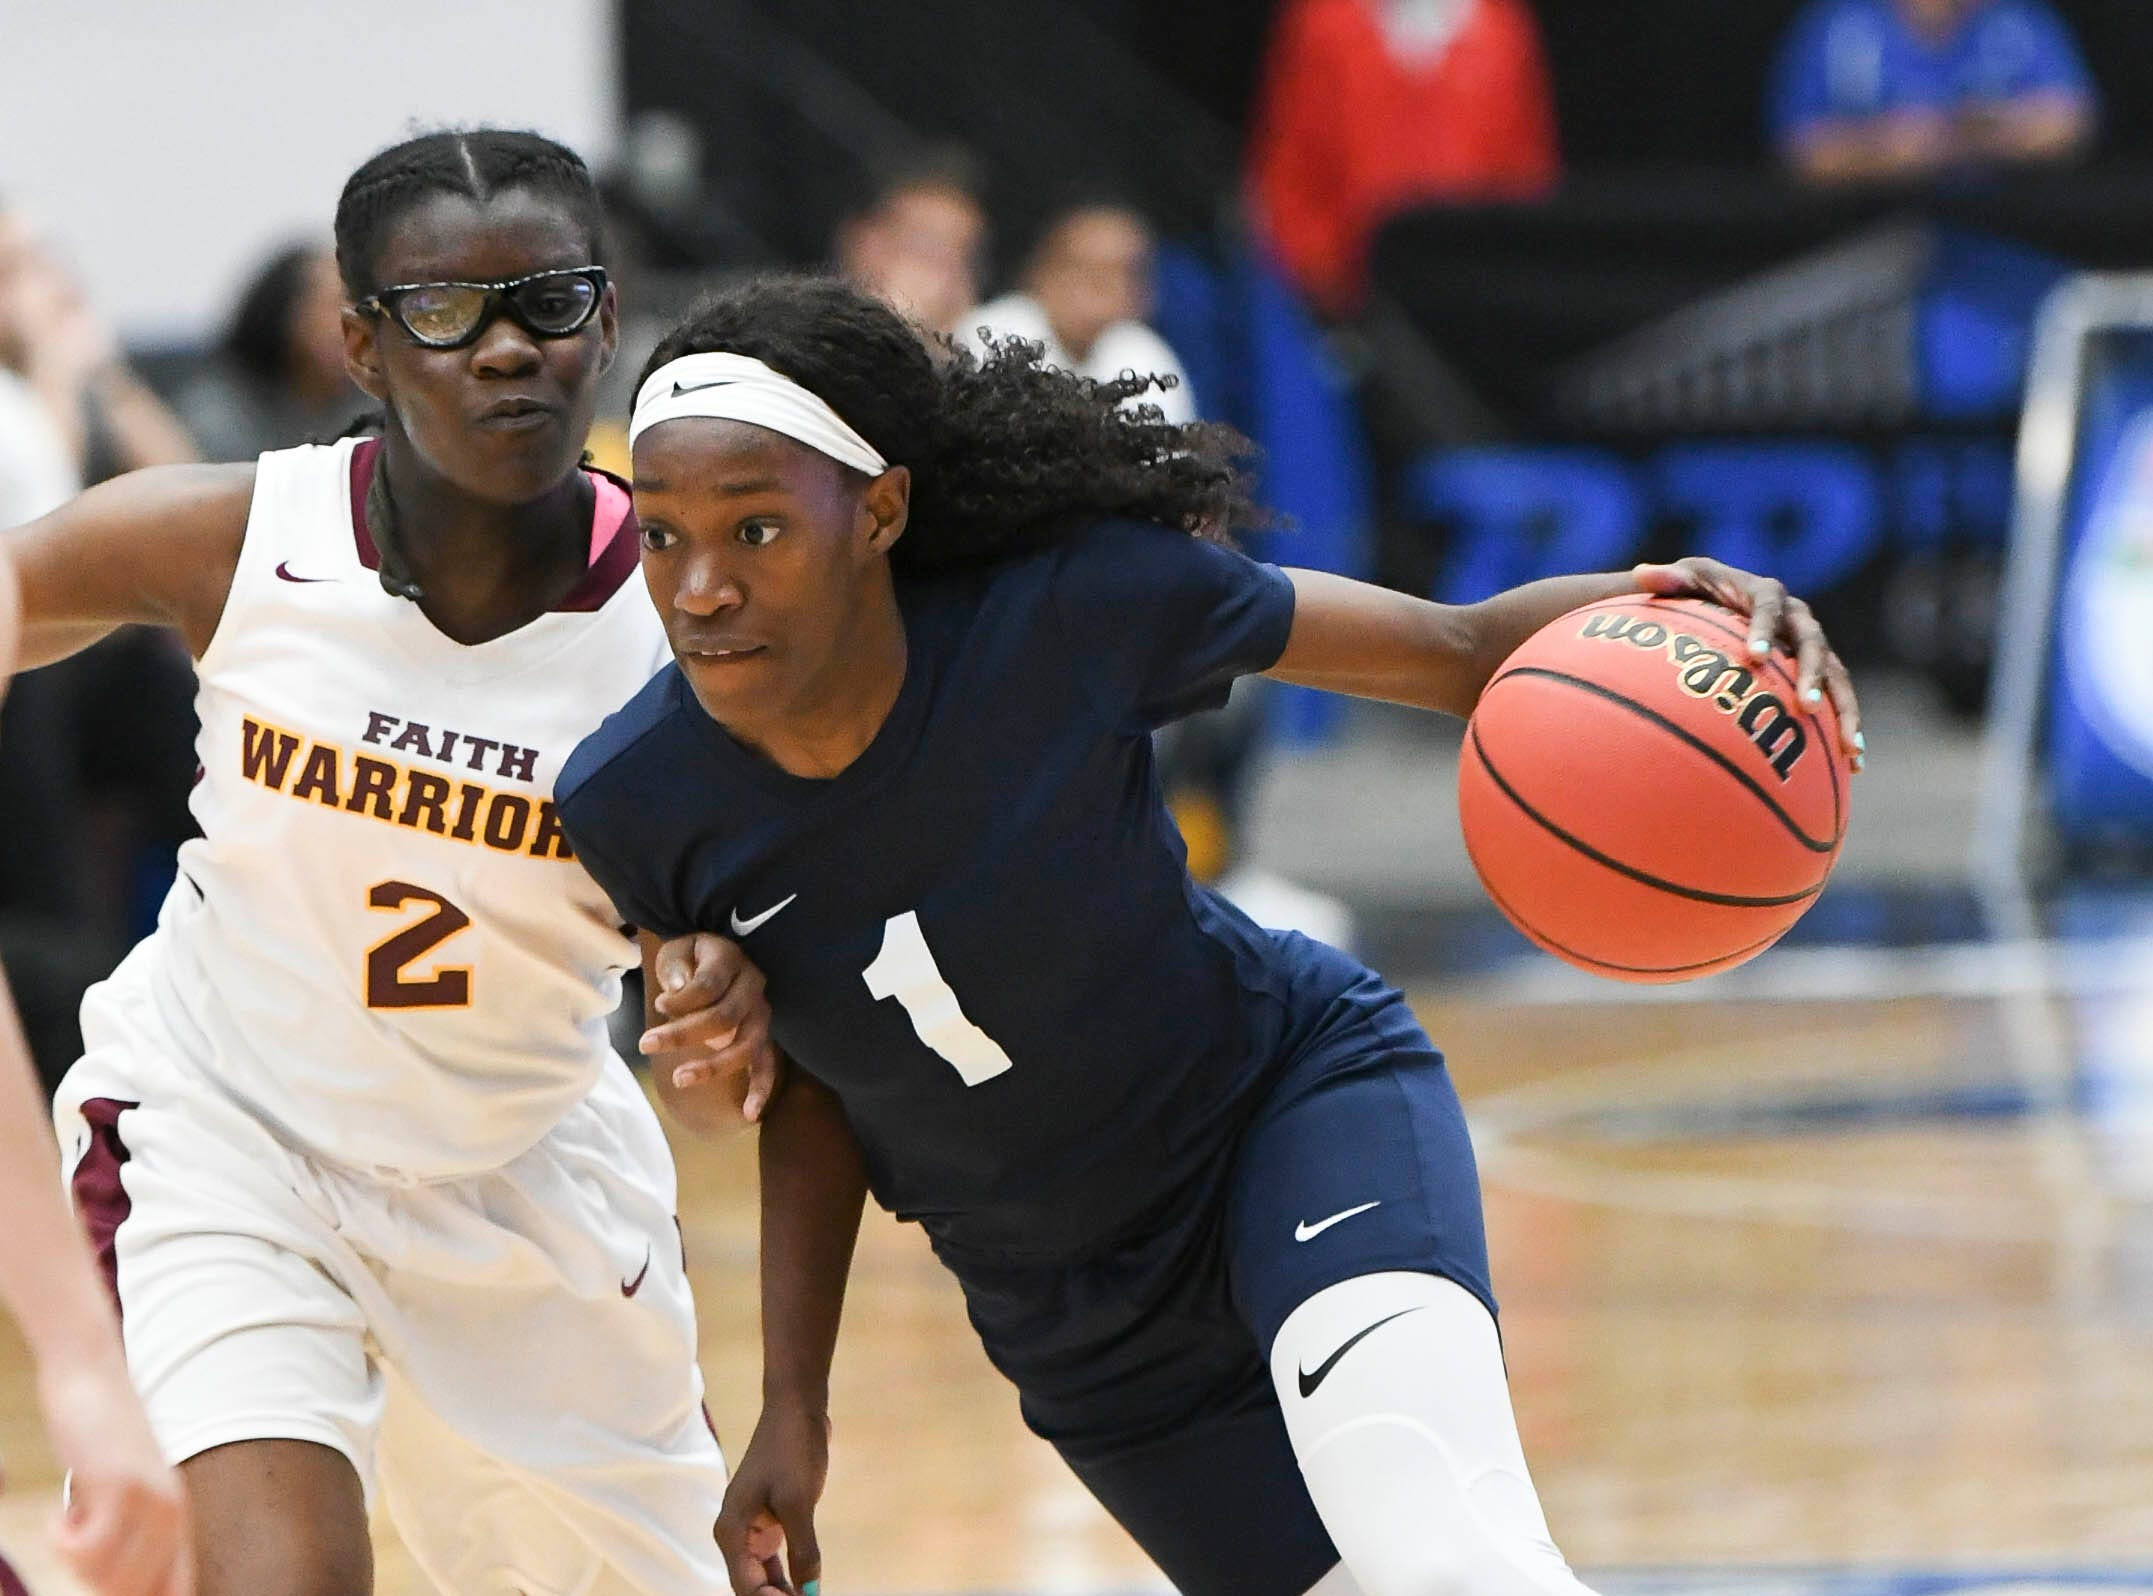 Jayla Johnson of Florida Prep drives to the hoop past Ari Royal of Bayshore Christian during Tuesday's Class 2A state championship game.